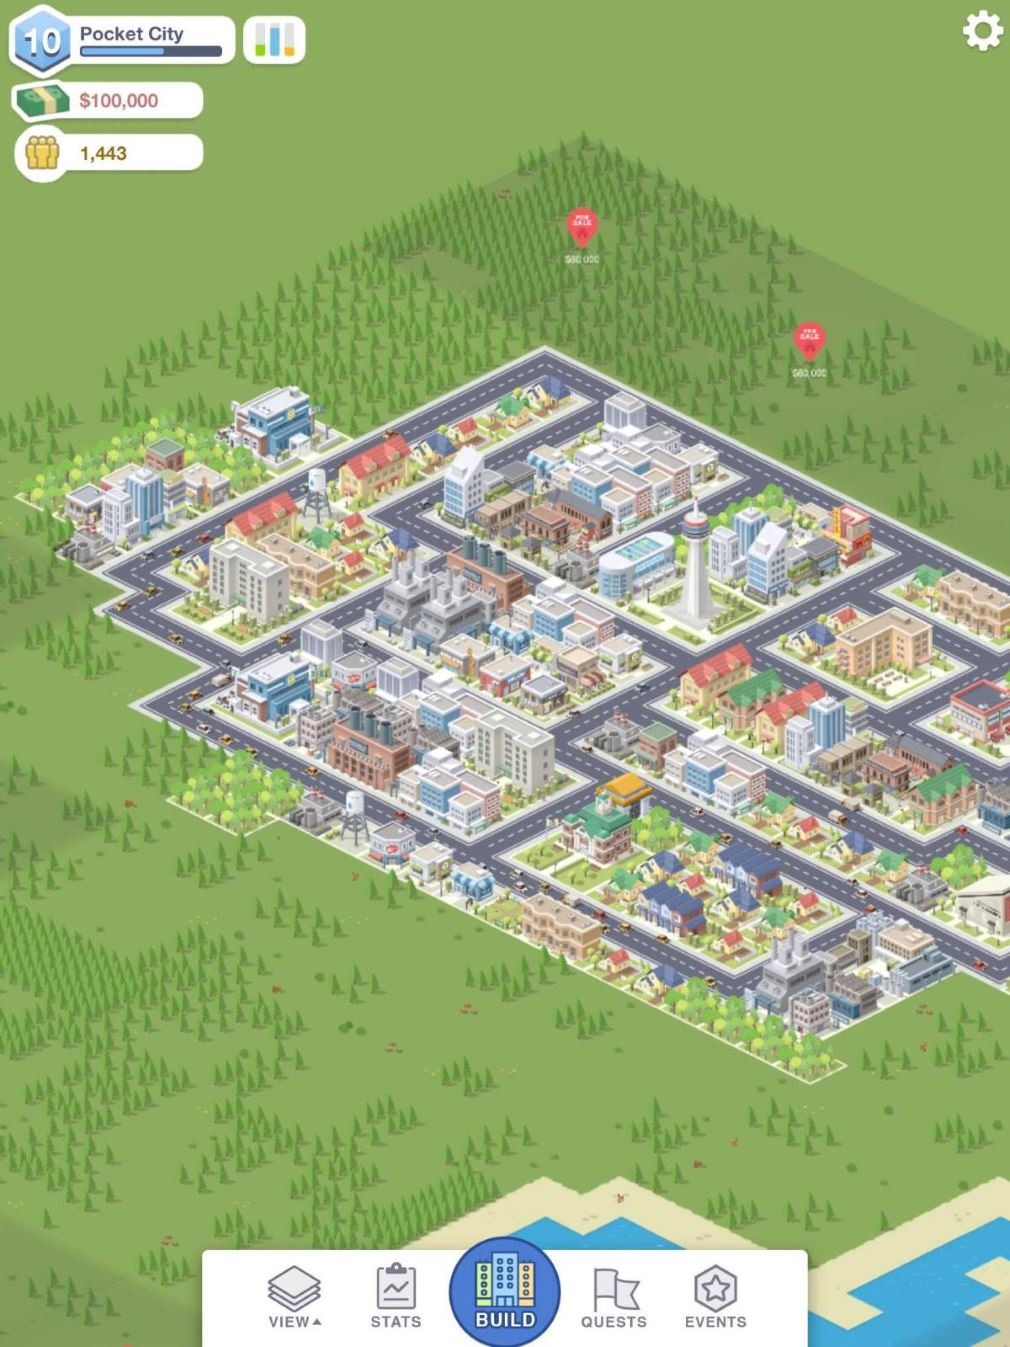 Pocket City is a mobile town-planning sim that calls to mind classics of the genre